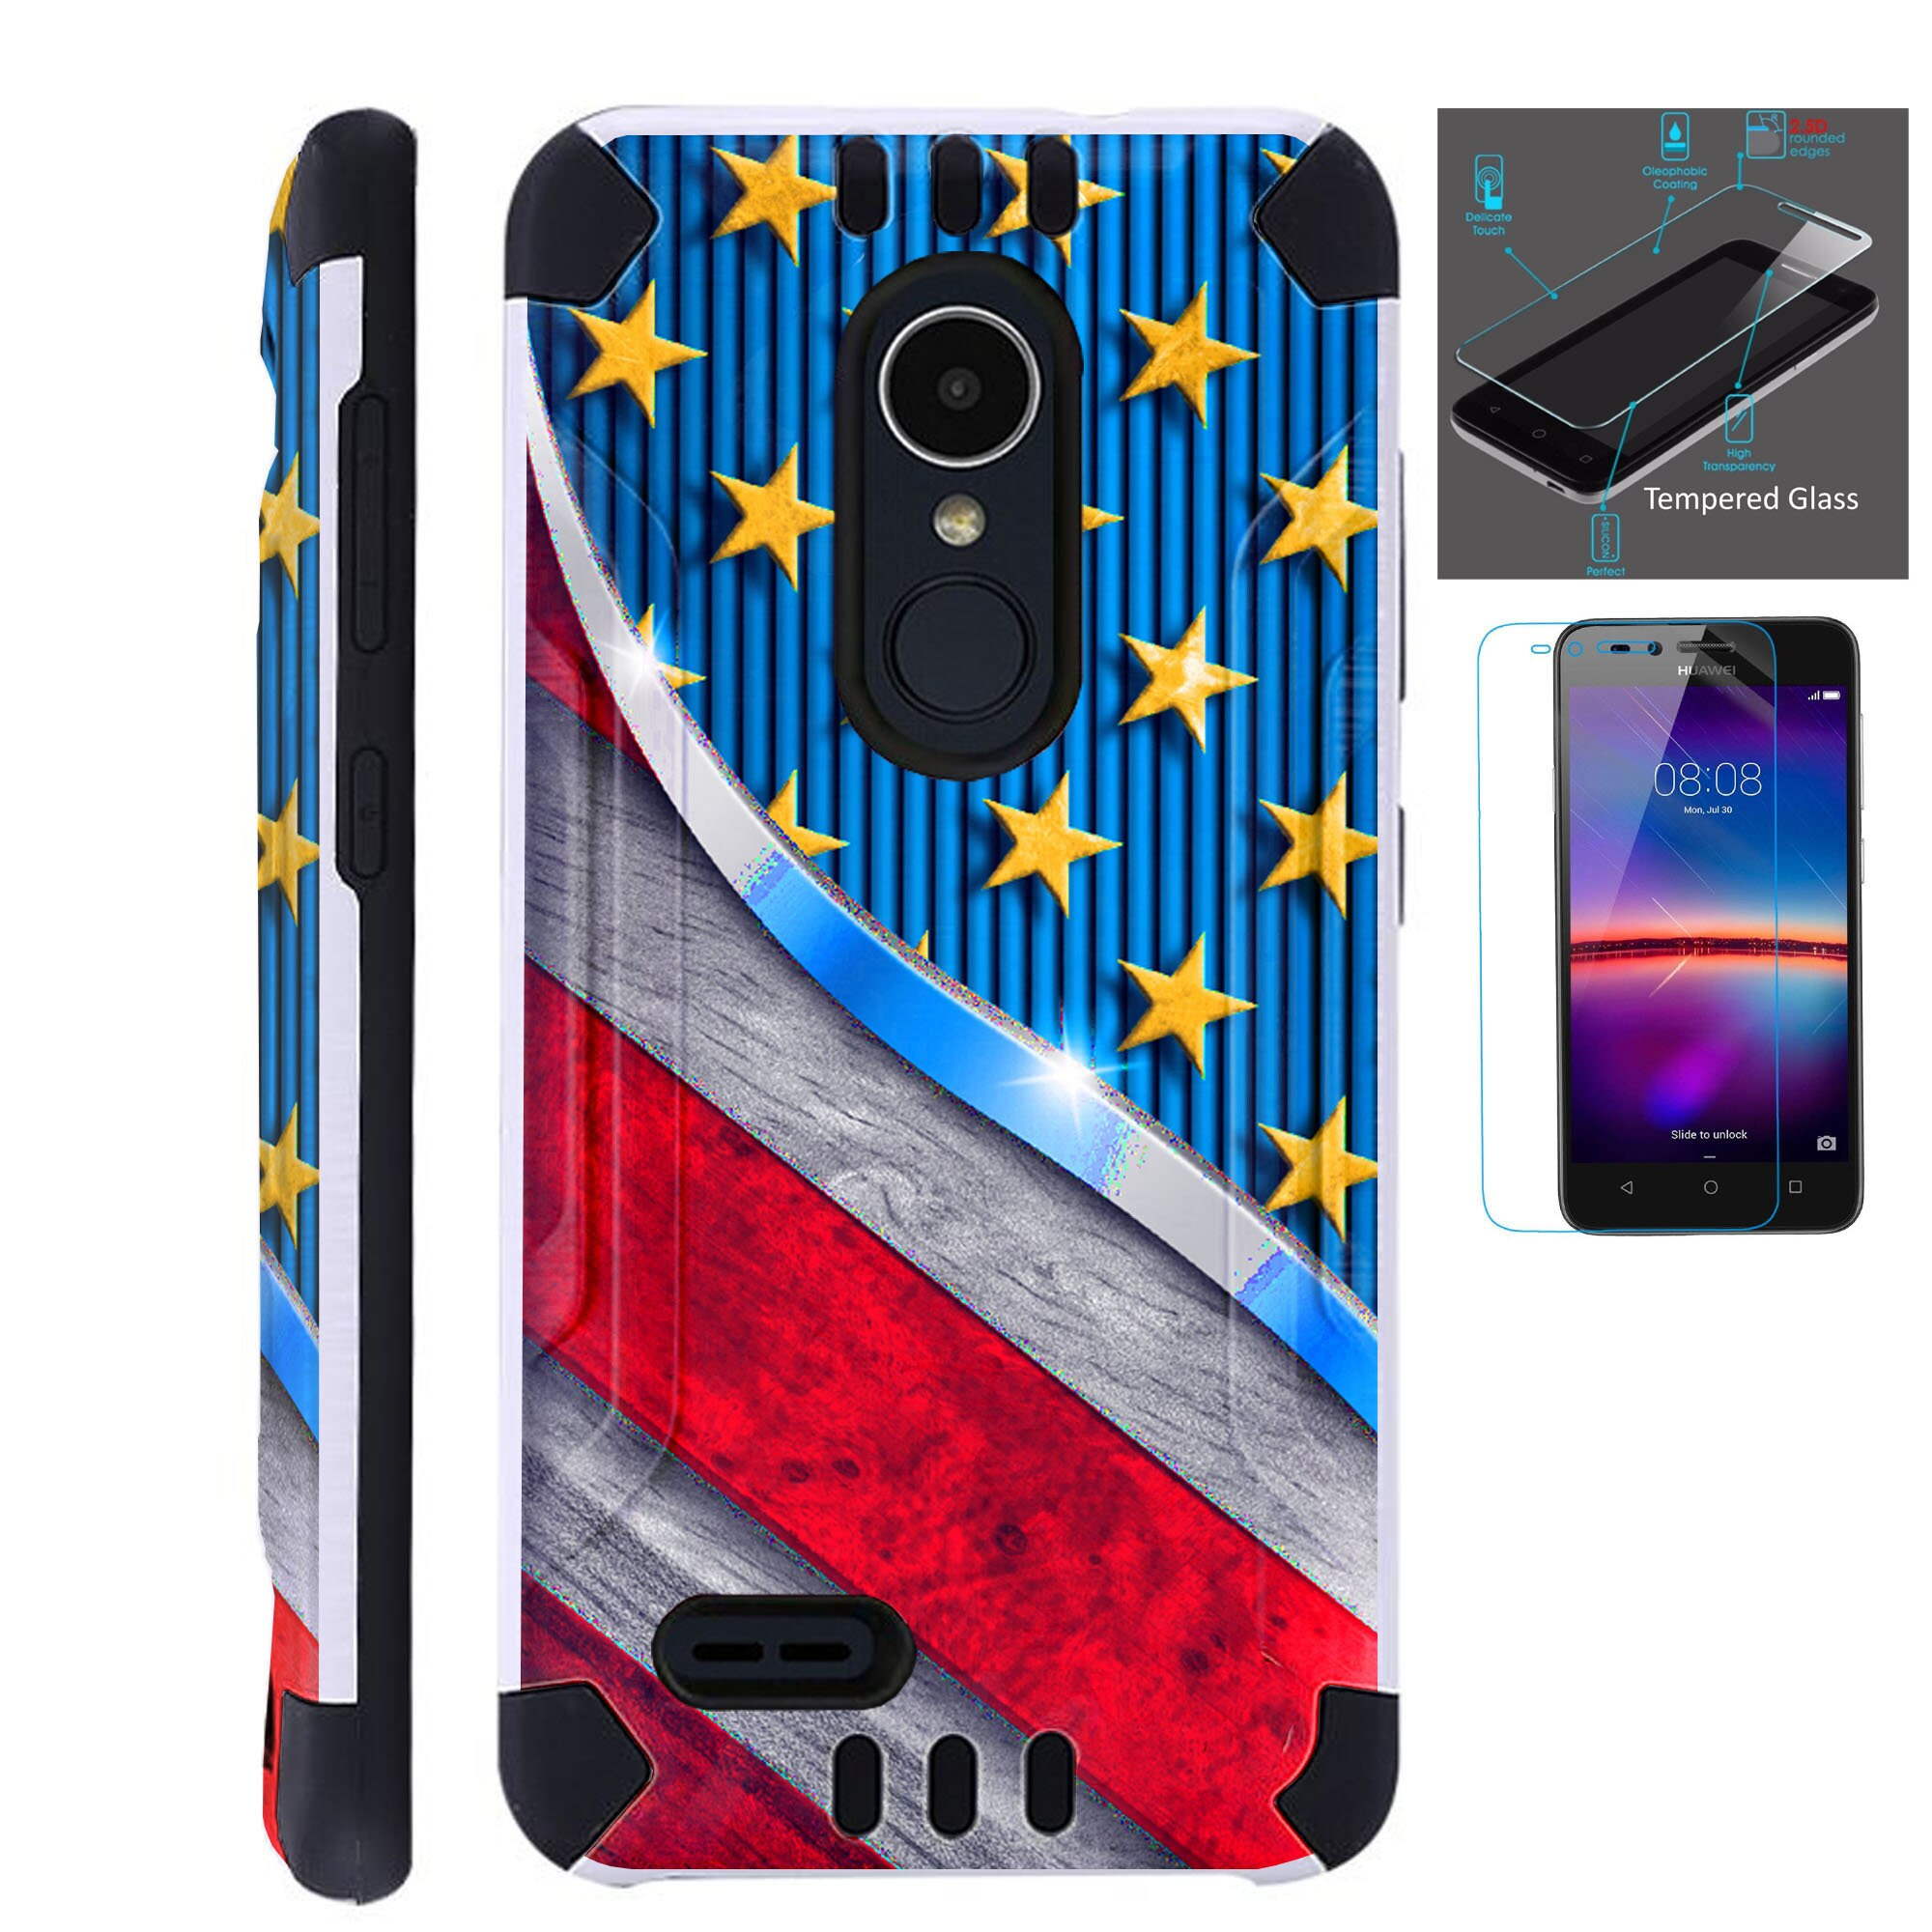 Combat Guard + Tempered Glass For Lg Stylo 3 4 Plus Fiesta 2 Lte Aristo 2  K30 Hybrid Dual Layer Armor Cover Slim Case US FLAG METALLIC